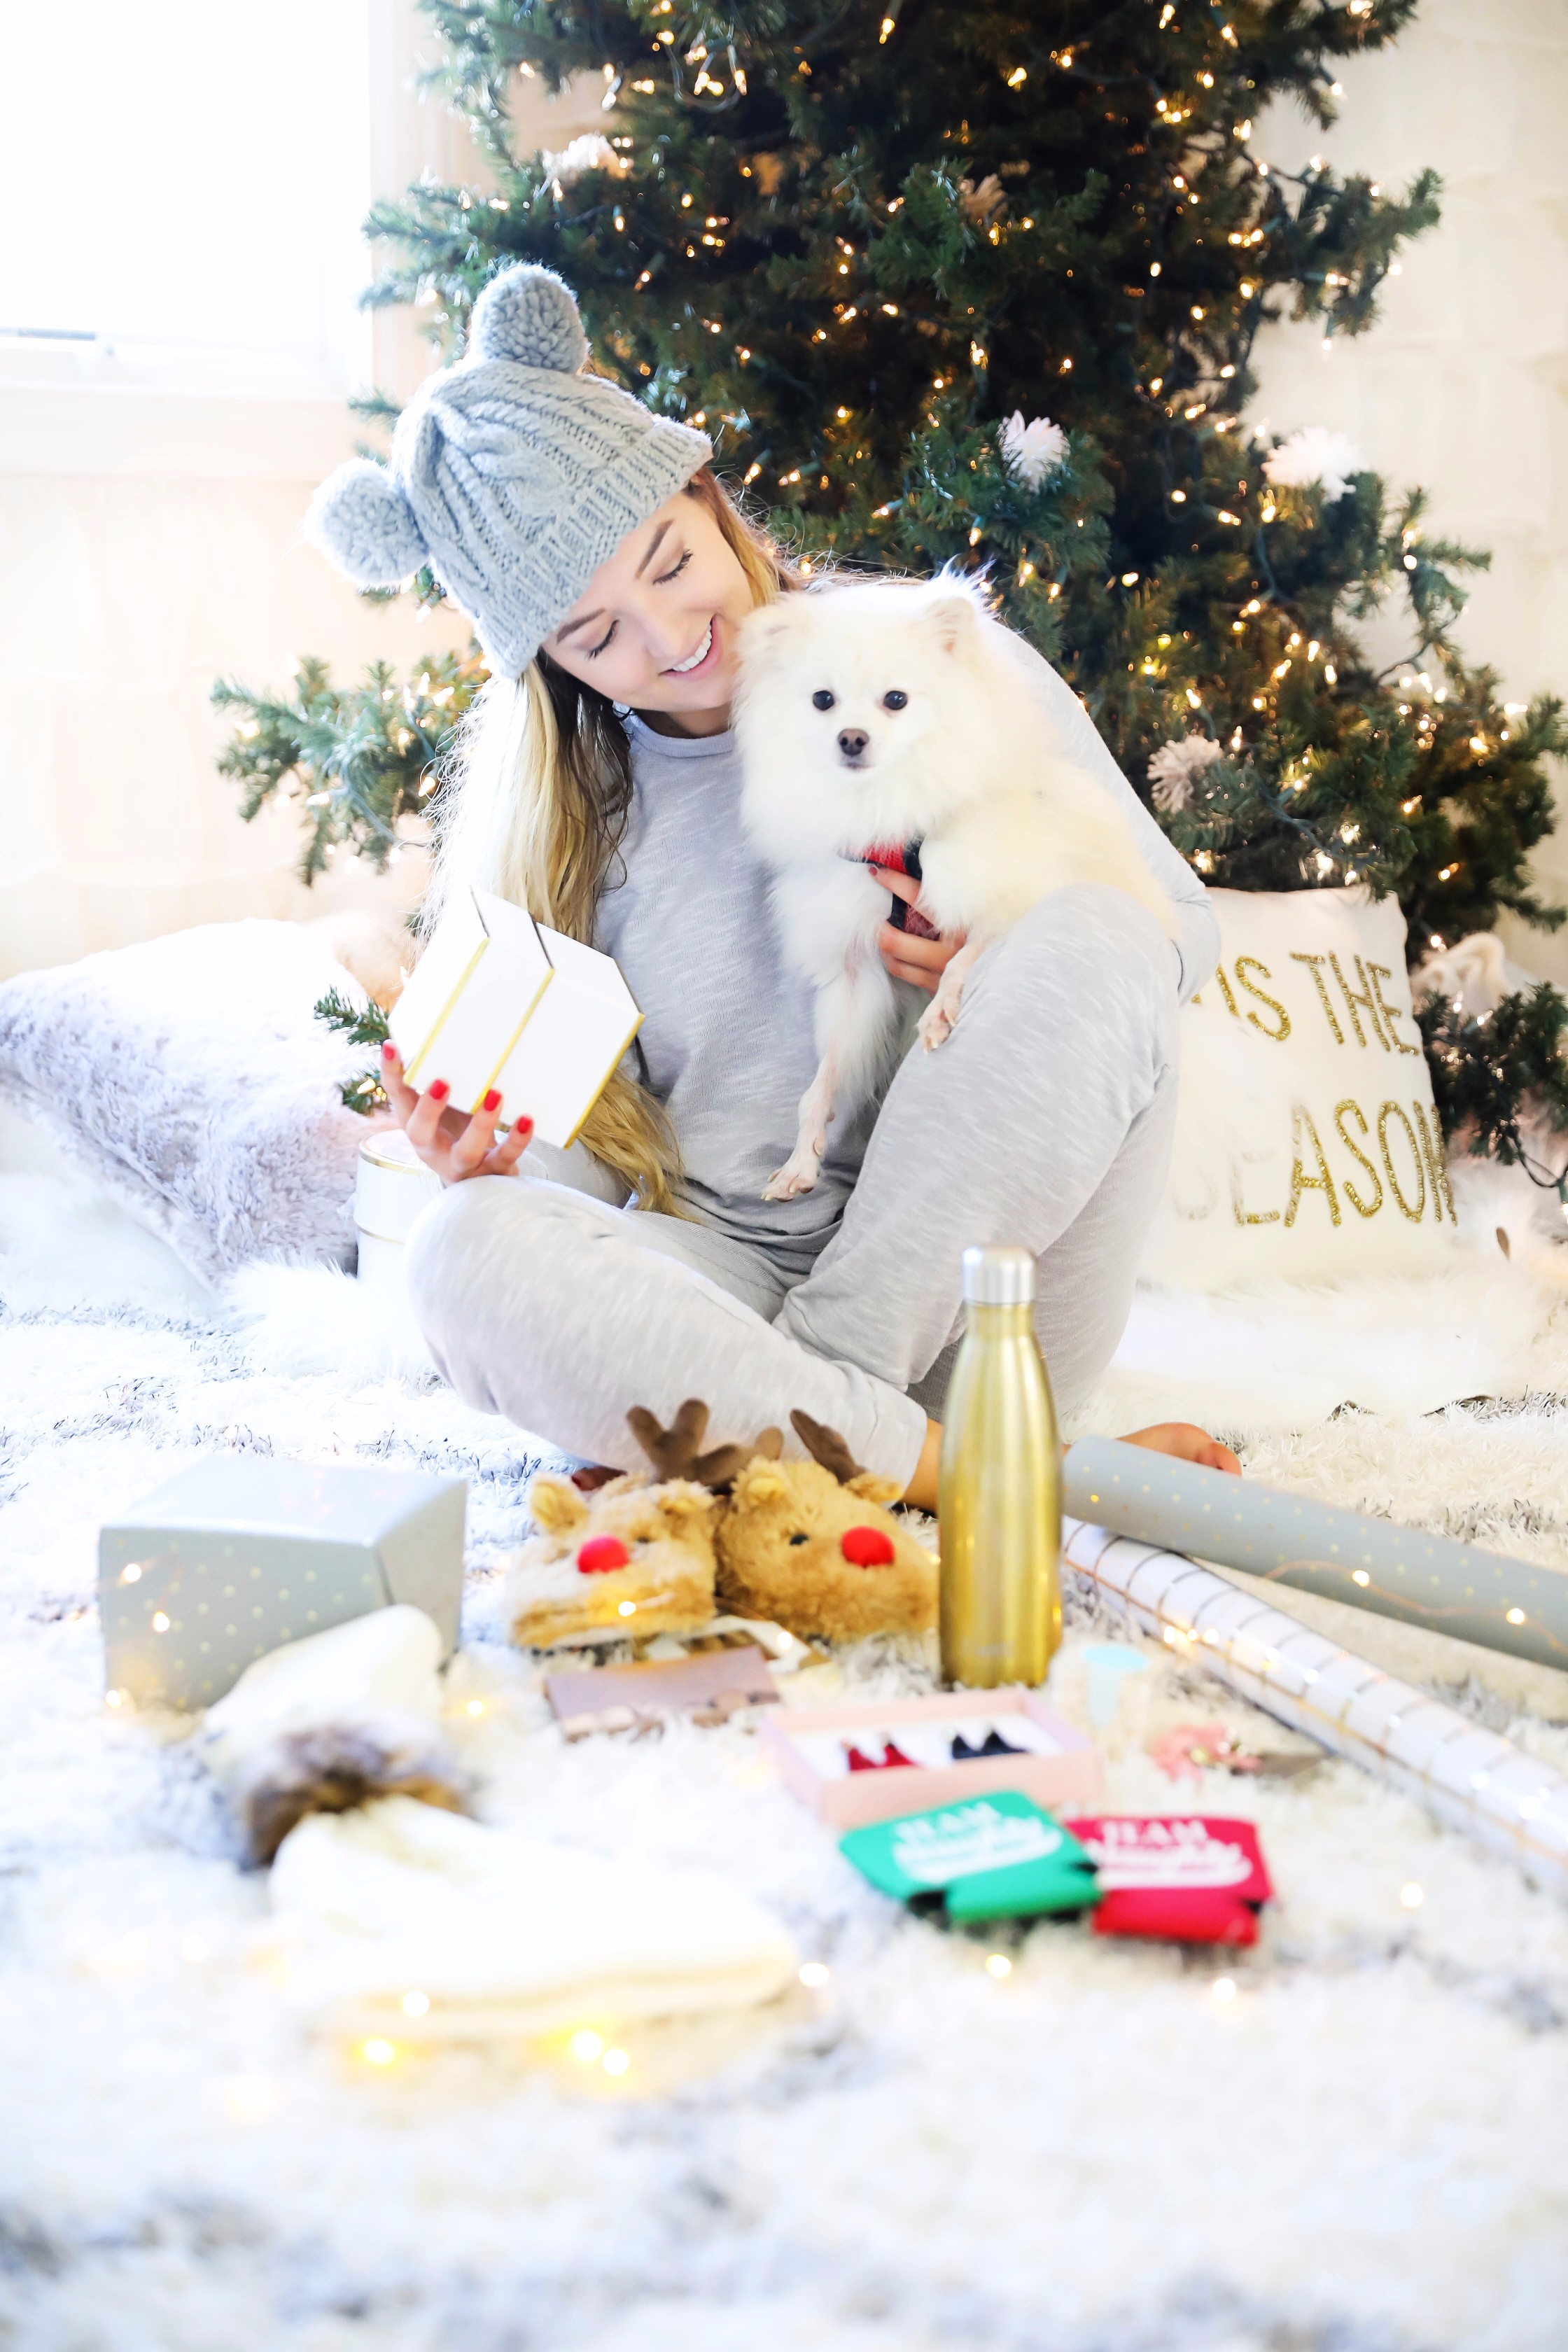 Stockings stuffer christmas ideas and huge holiday giveaway! Details on fashion blog daily dose of charm by lauren lindmark